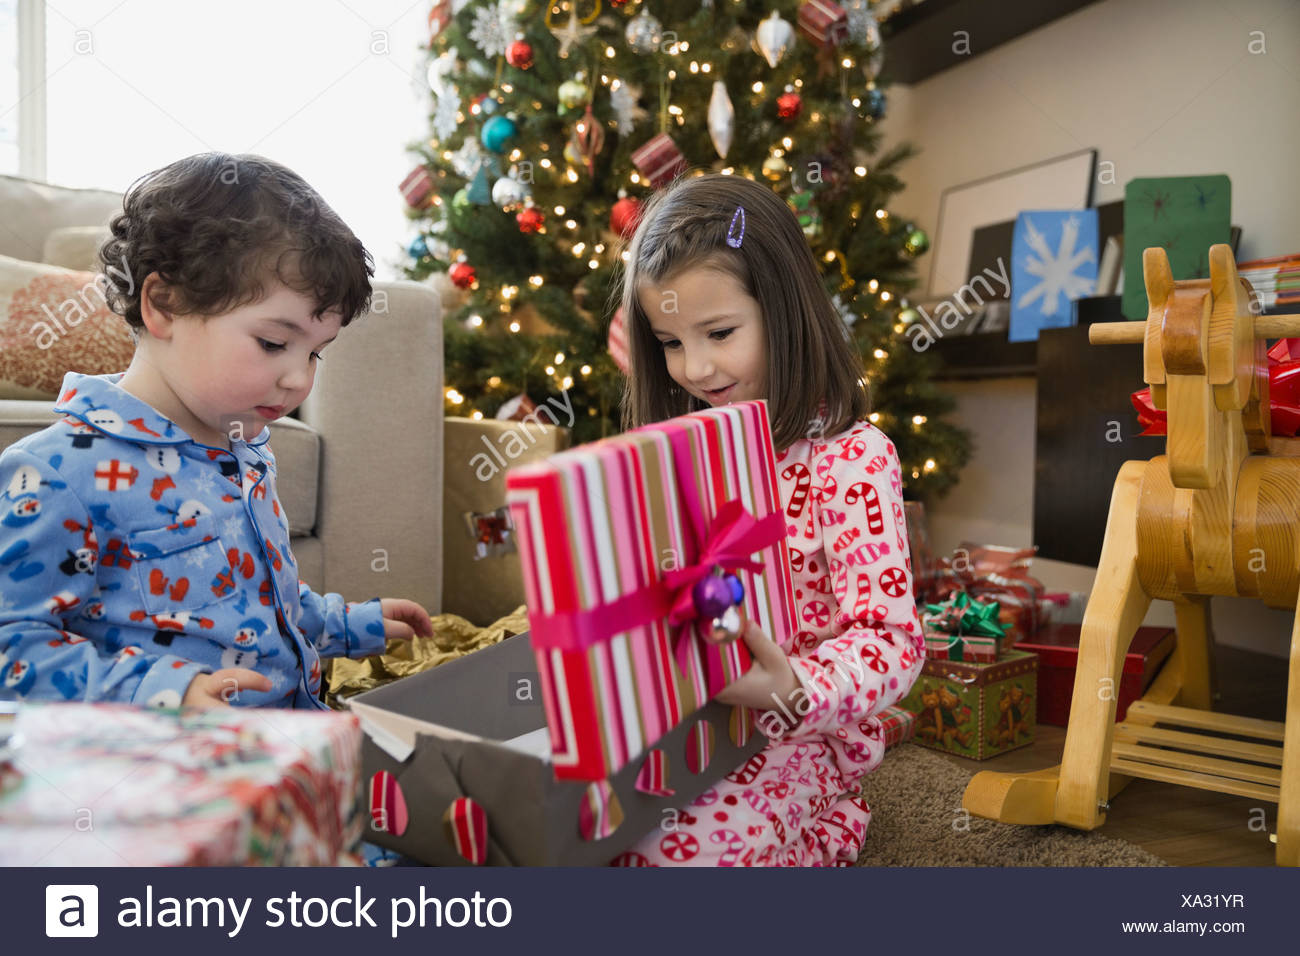 Siblings opening Christmas gift at home - Stock Image